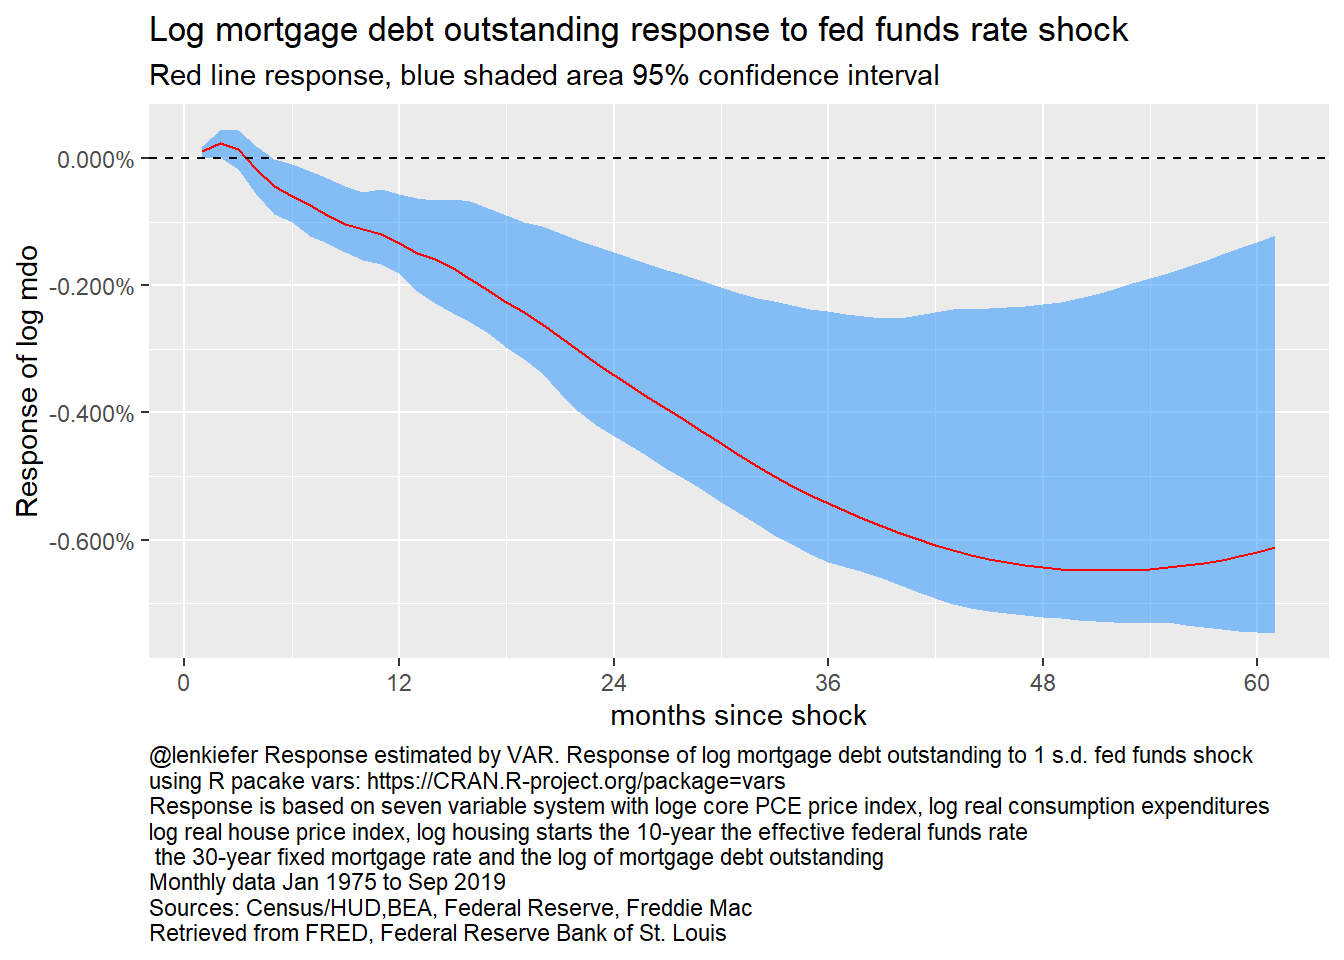 Response of log mortgage debt outstanding to fed funds rate, 7 variable VAR